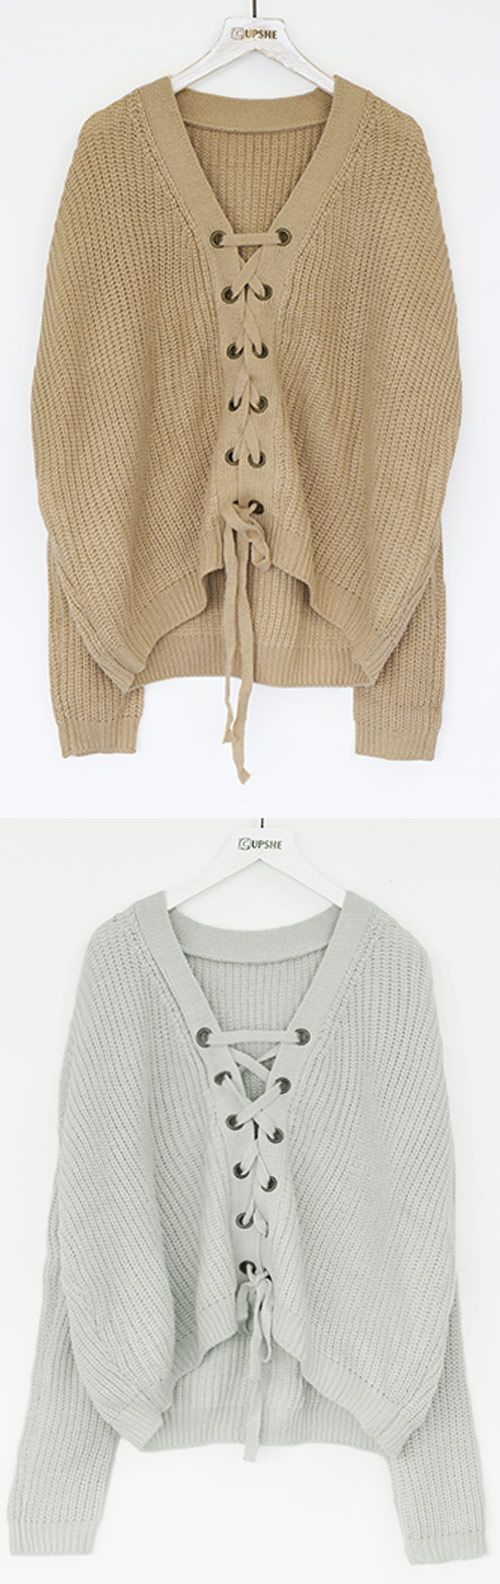 $26.99 for new arrival! So cool for school with free shipping! Feeling as fresh as you look with the lace up sweater! This sweater won't press your buttons rather it will impress them!! Find your favorite at Cupshe.com !